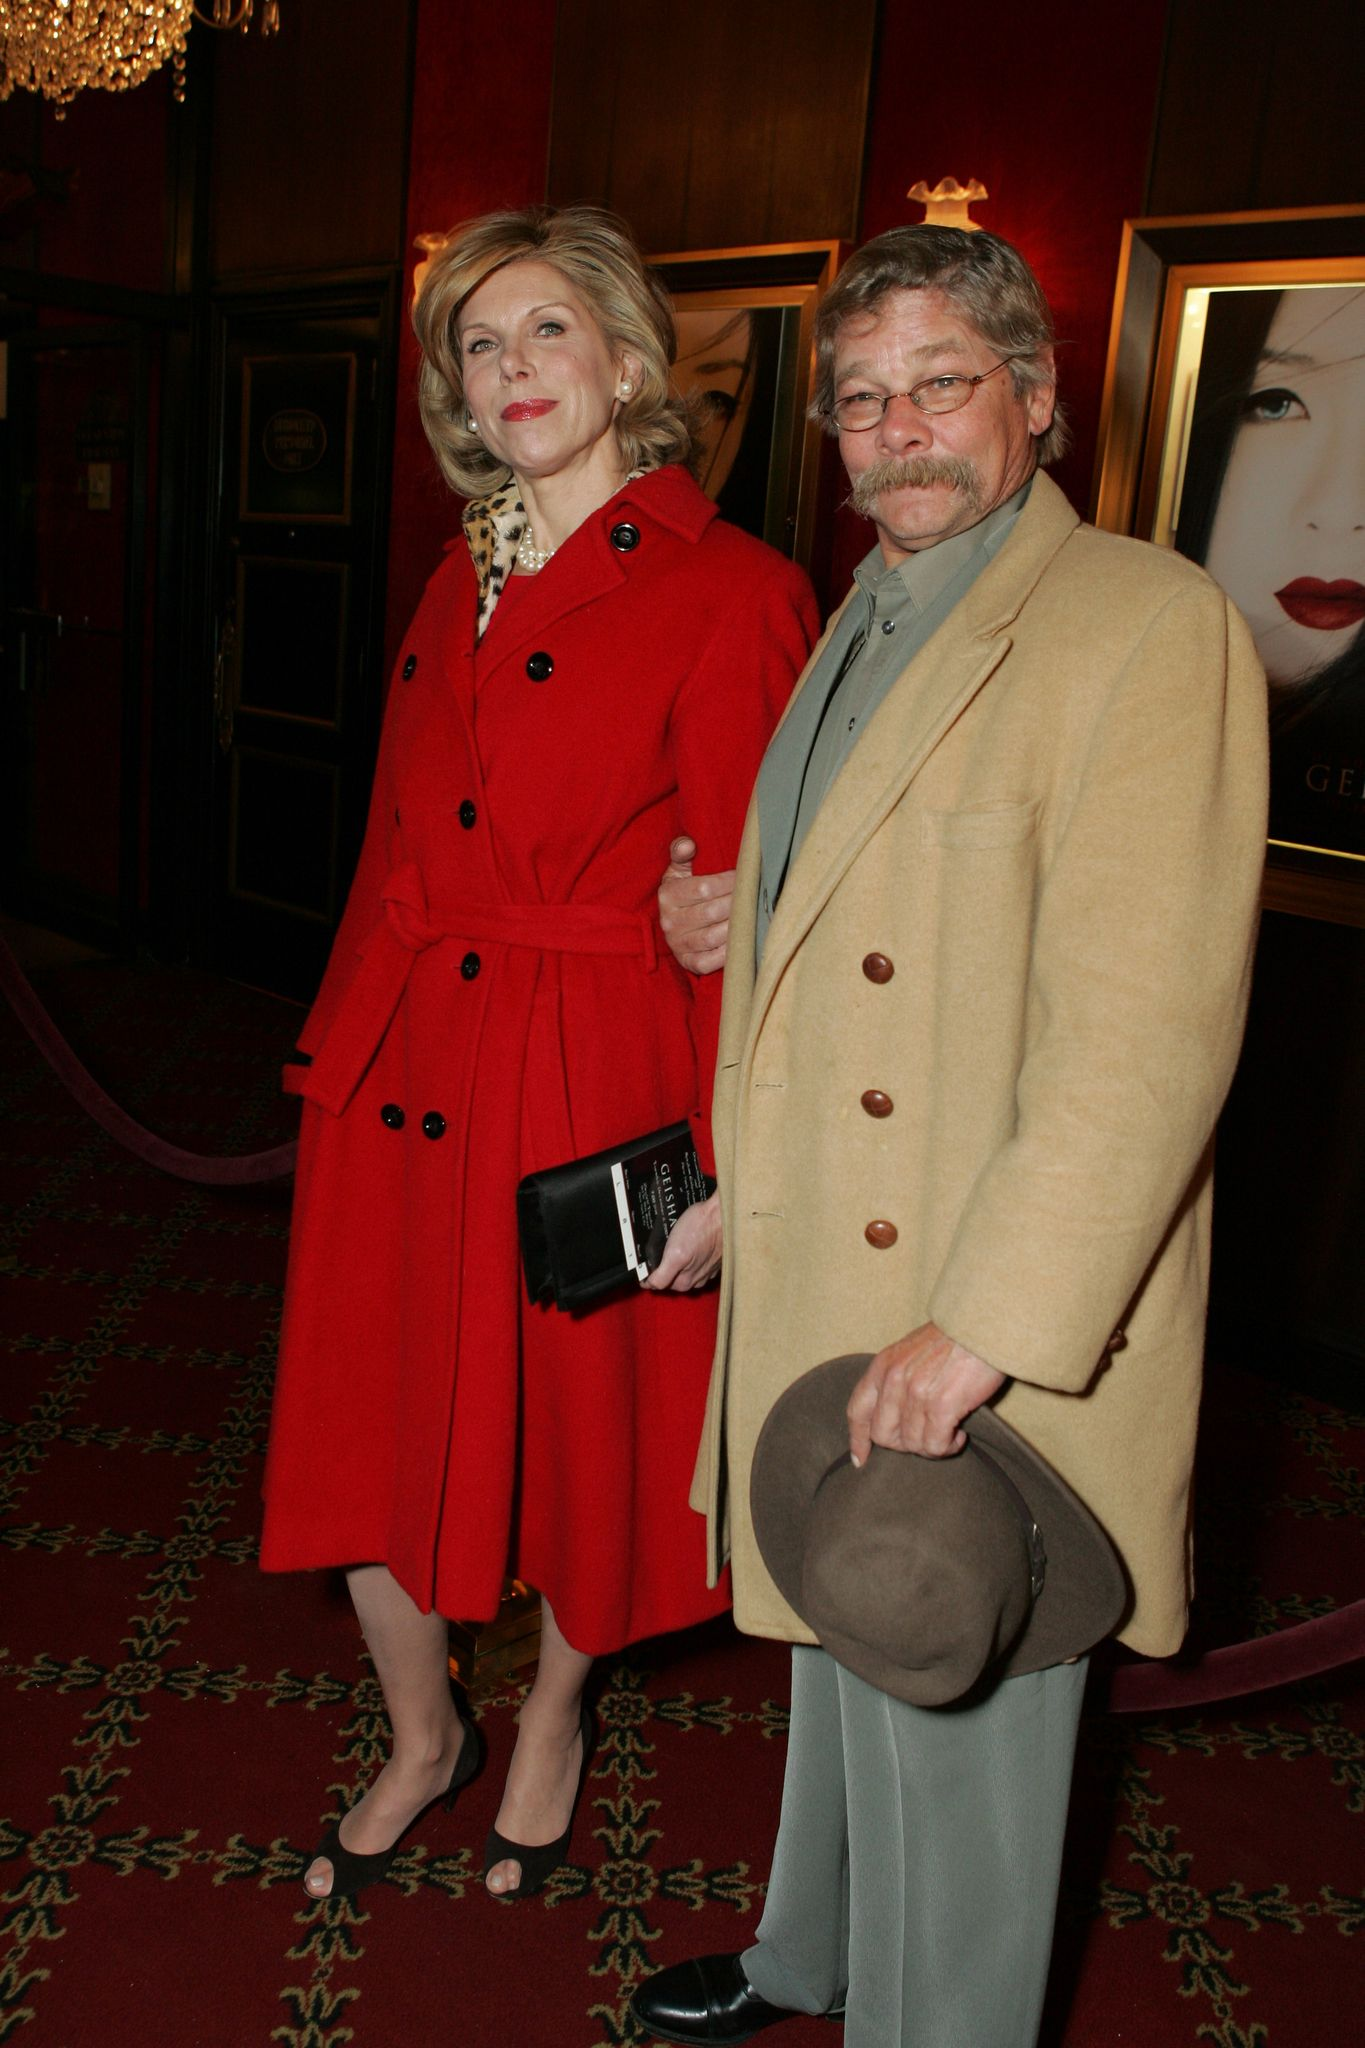 """Christine Baranski and Matthew Cowles at the premiere of """"Memoirs of a Geisha"""" in 2005 in New York 